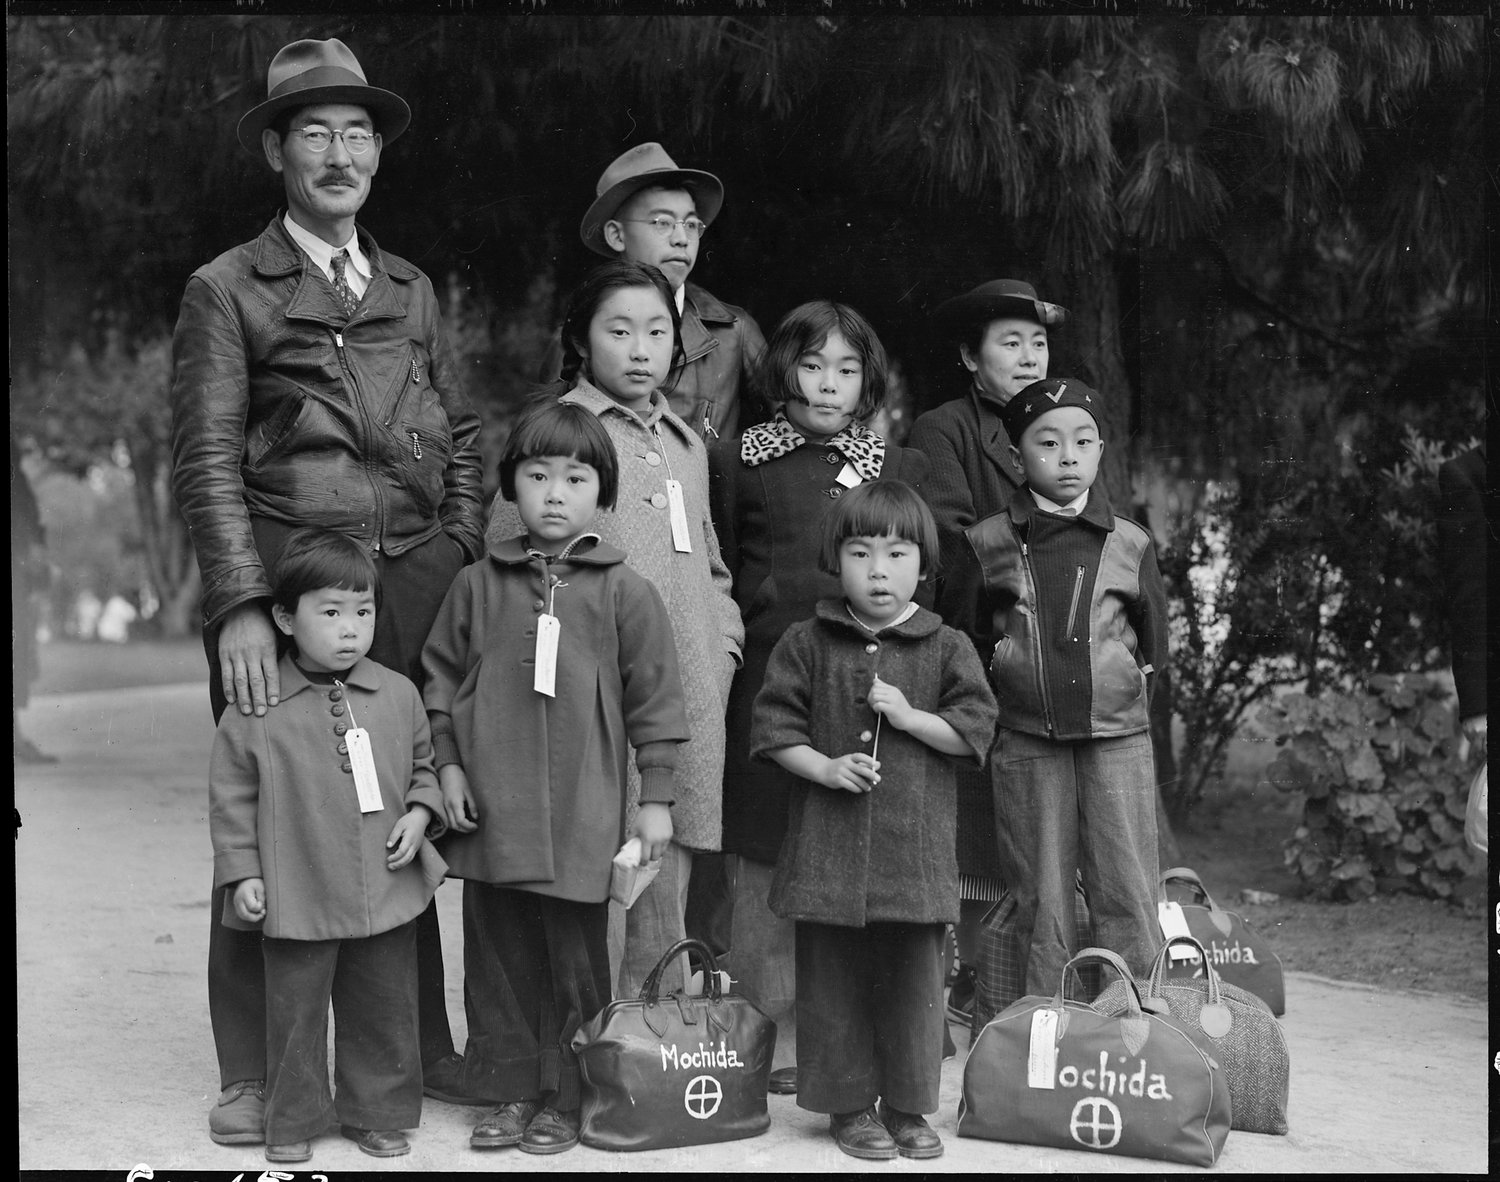 Original caption: Hayward, California. Members of the Mochida family awaiting evacuation bus. Identification tags are used to aid in keeping the family unit intact during all phases of evacuation. Mochida operated a nursery and five greenhouses on a two-acre site in Eden Township. He raised snapdragons and sweet peas. Evacuees of Japanese ancestry will be housed in War Relocation Authority centers for the duration.